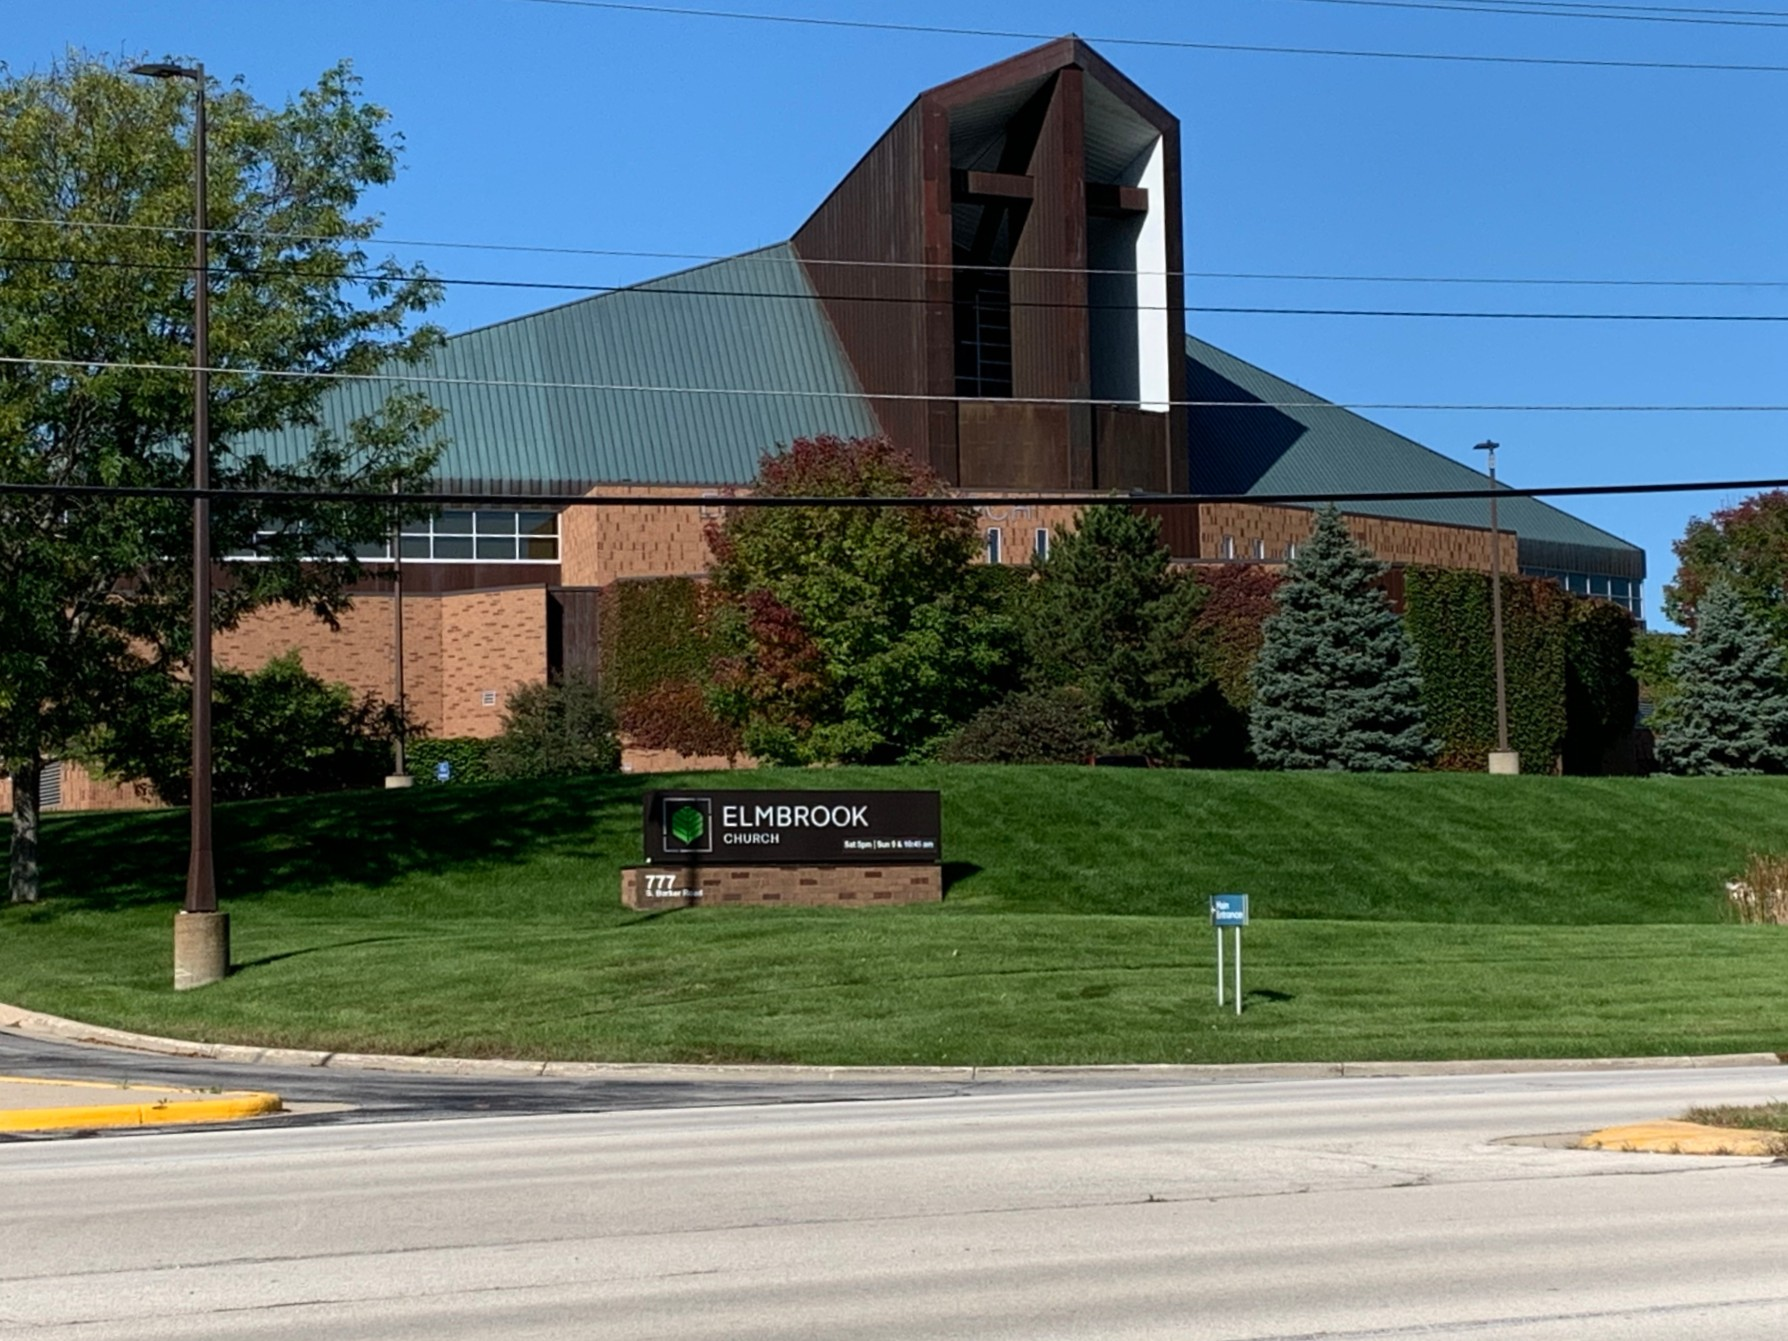 Founded in 1956, Elmbrook Church in Brookfield has steadily expanded to become the largest unaffiliated church in Wisconsin.